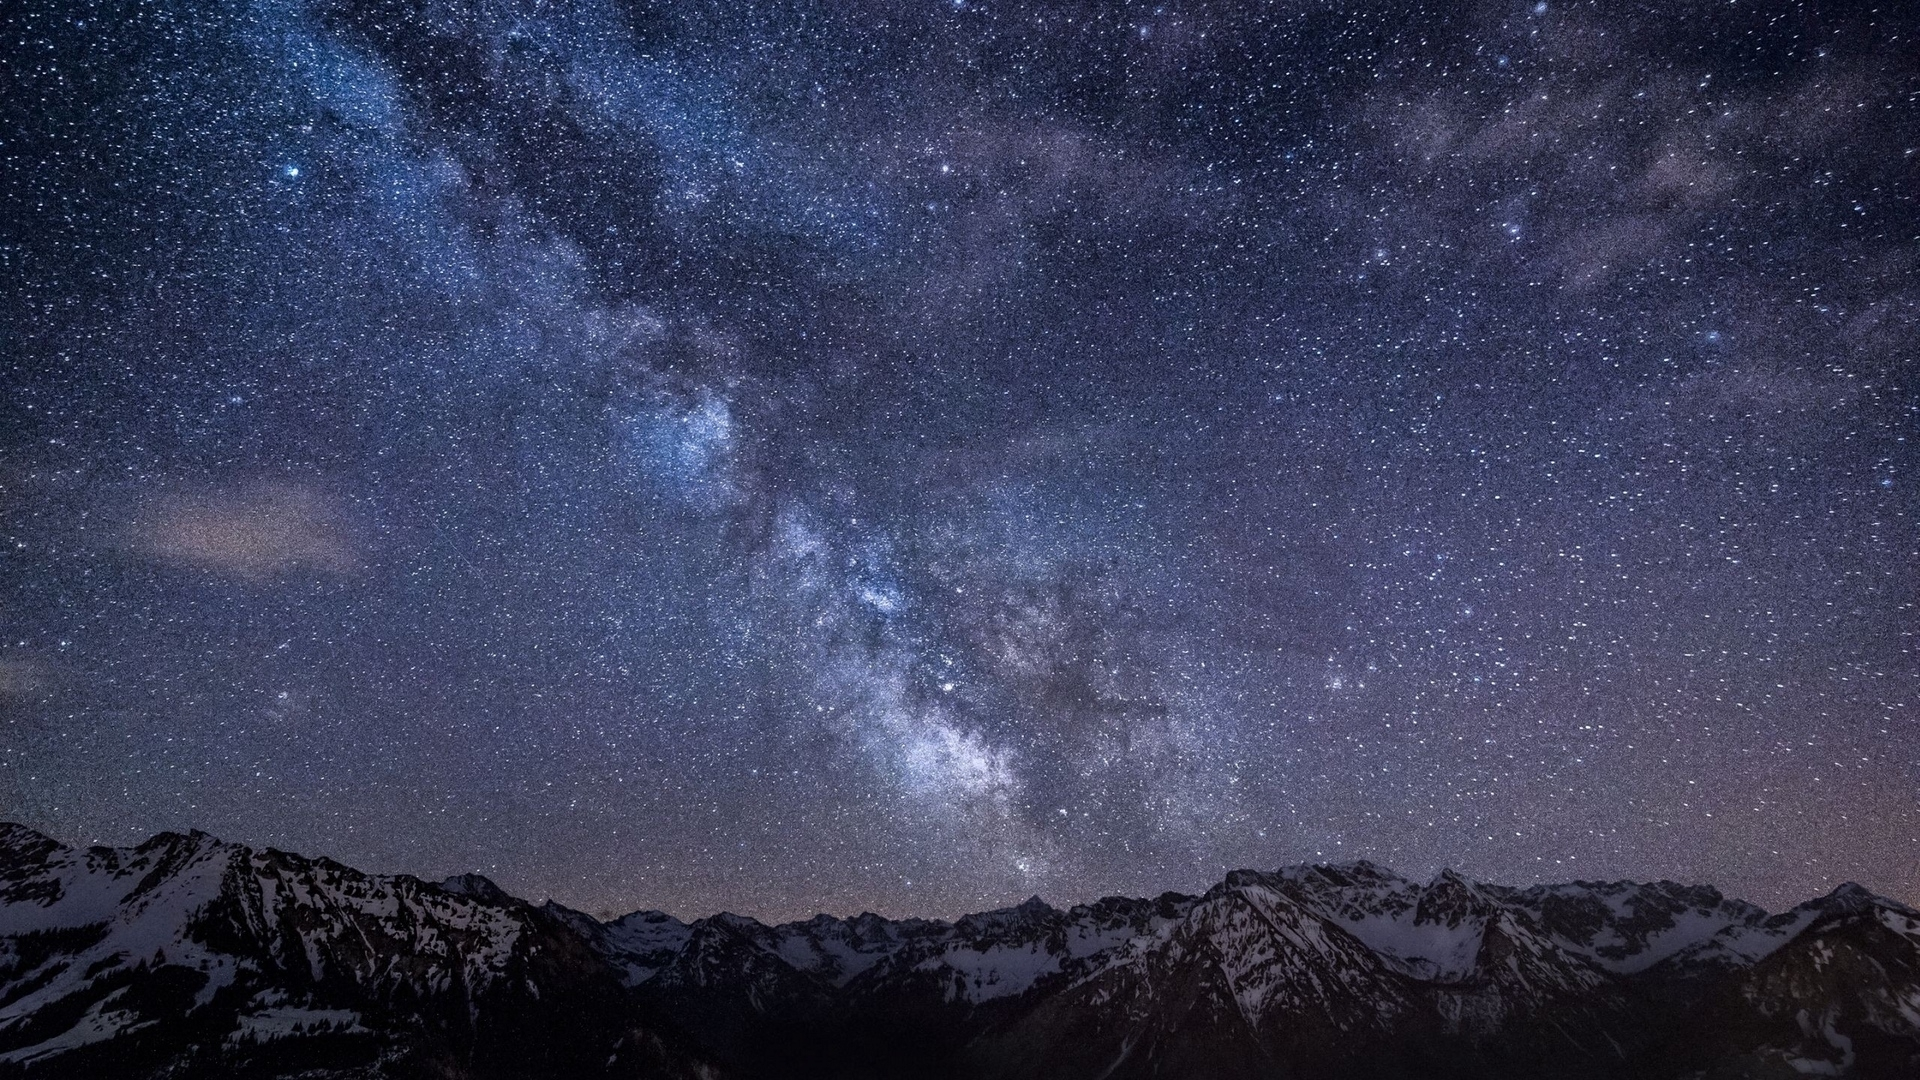 download wallpaper 1920x1080 mountains, night, sky, stars full hd